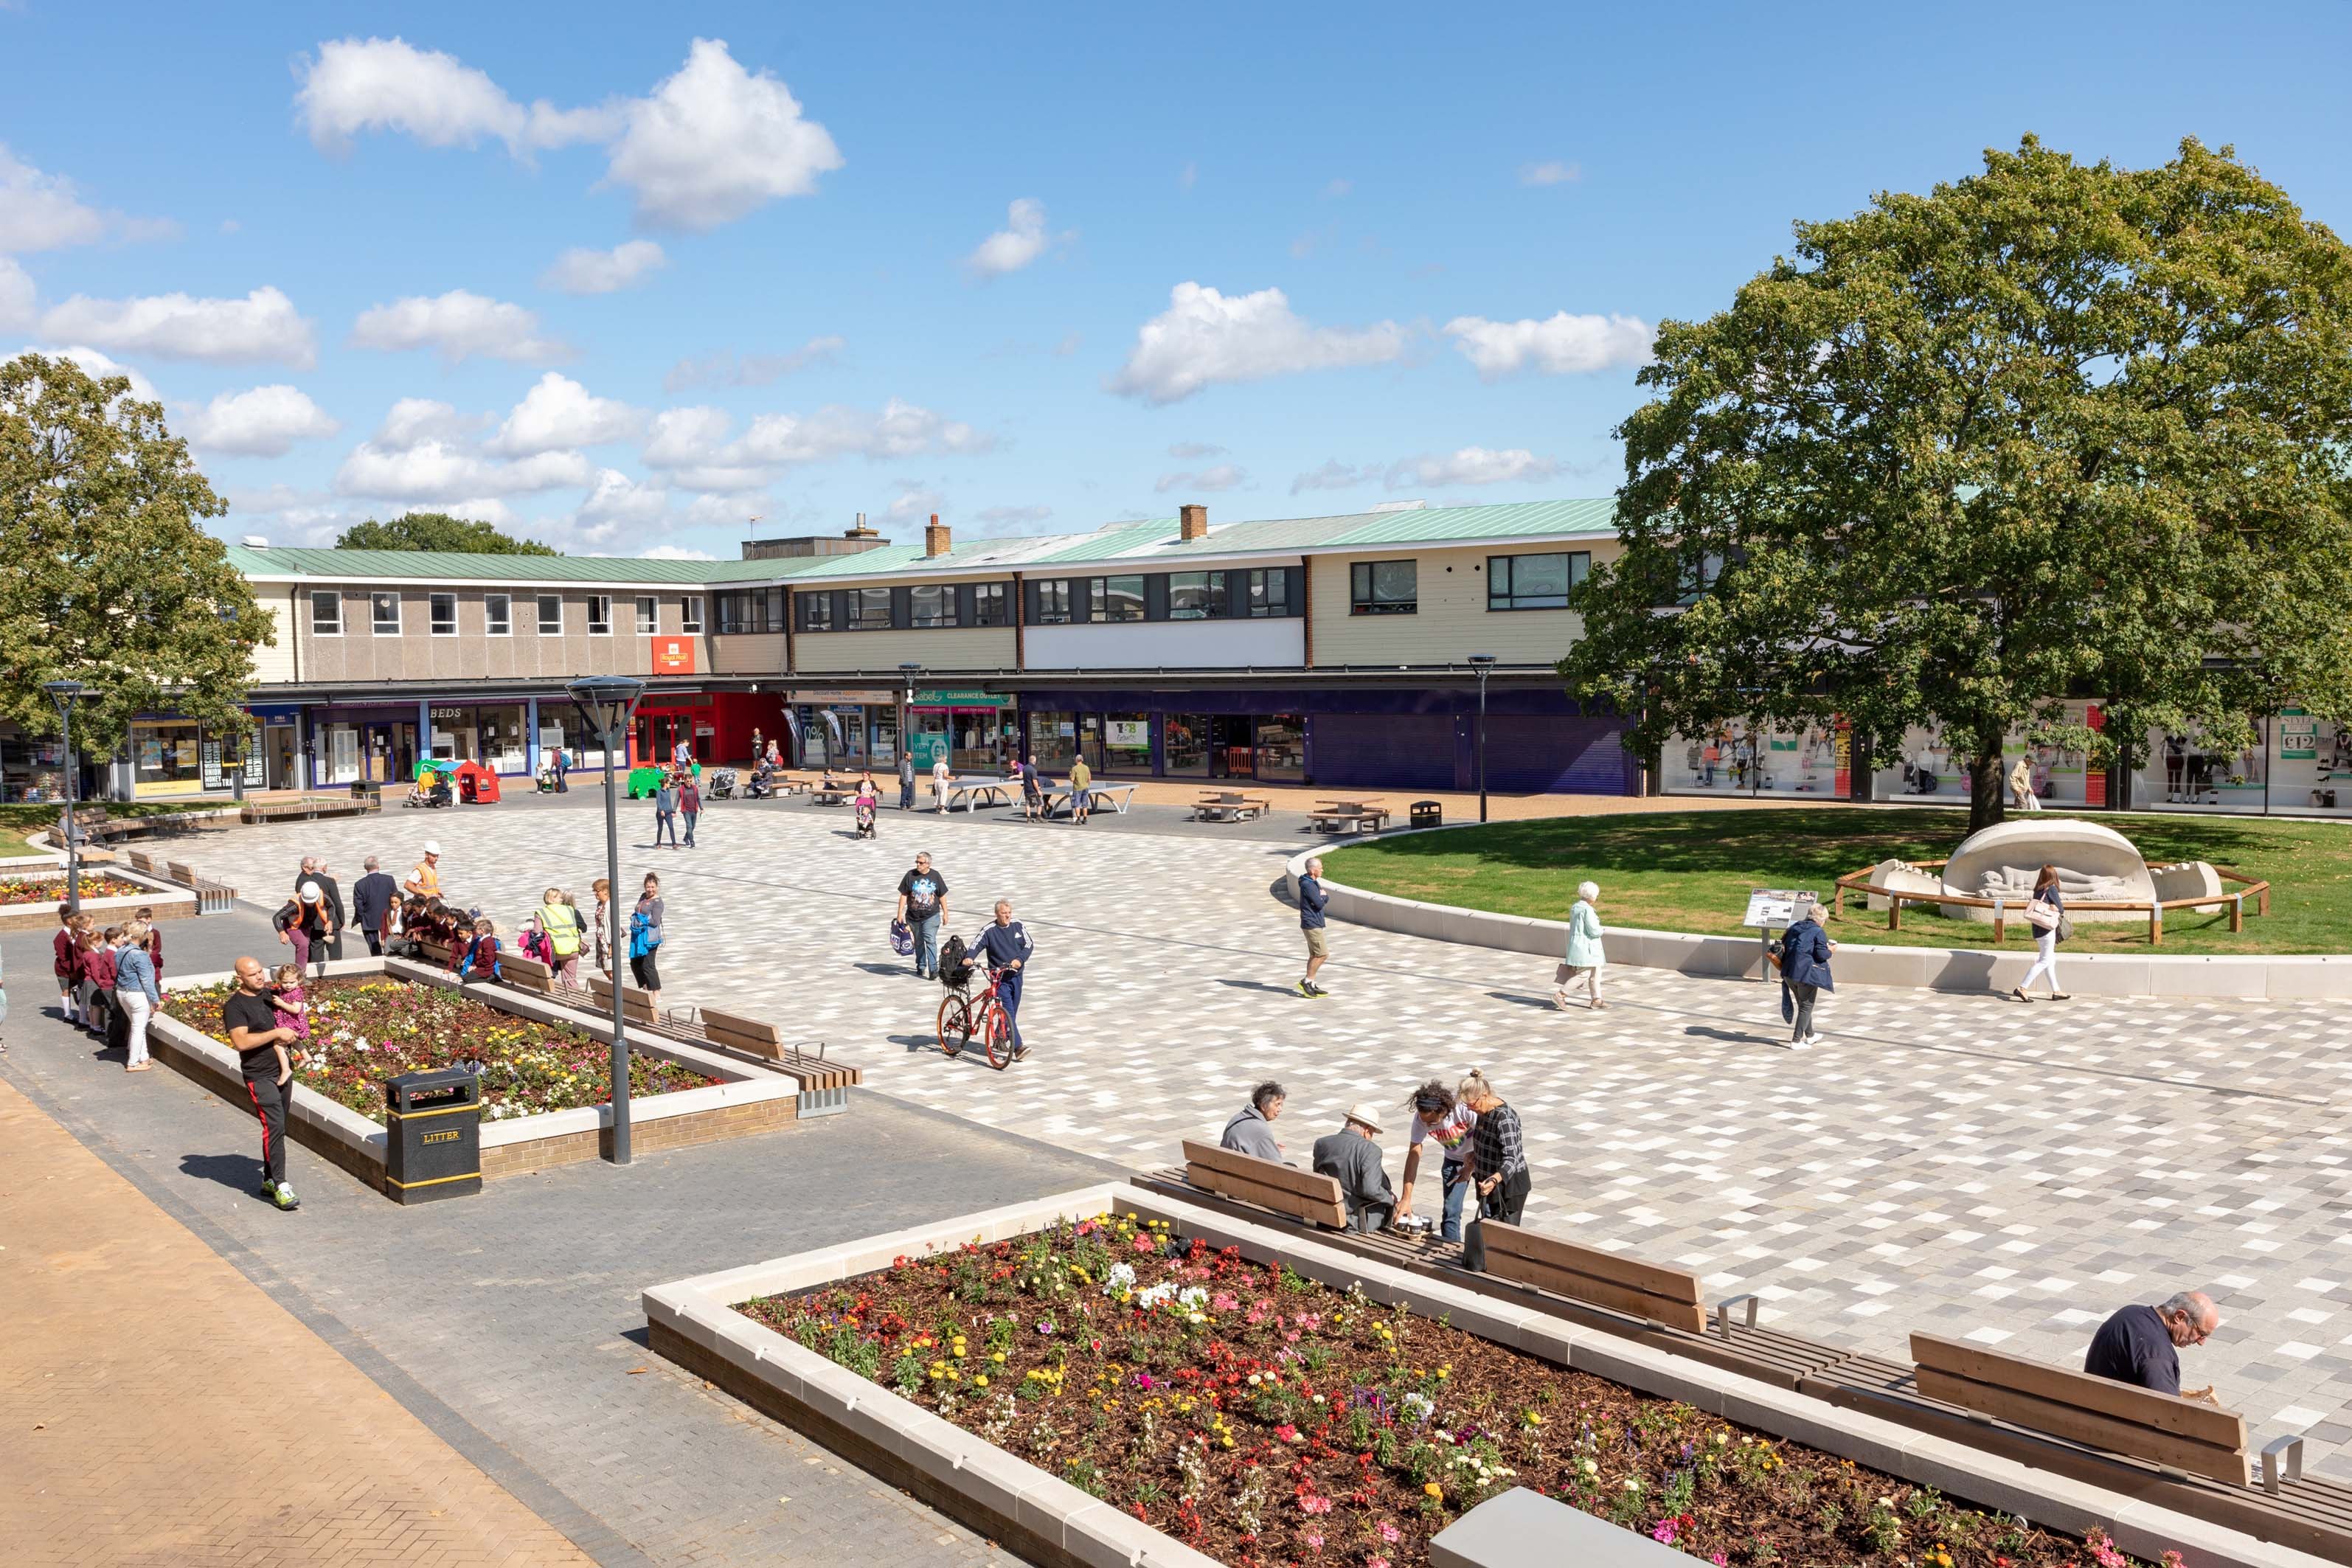 First stage of Hatfield's regeneration completes